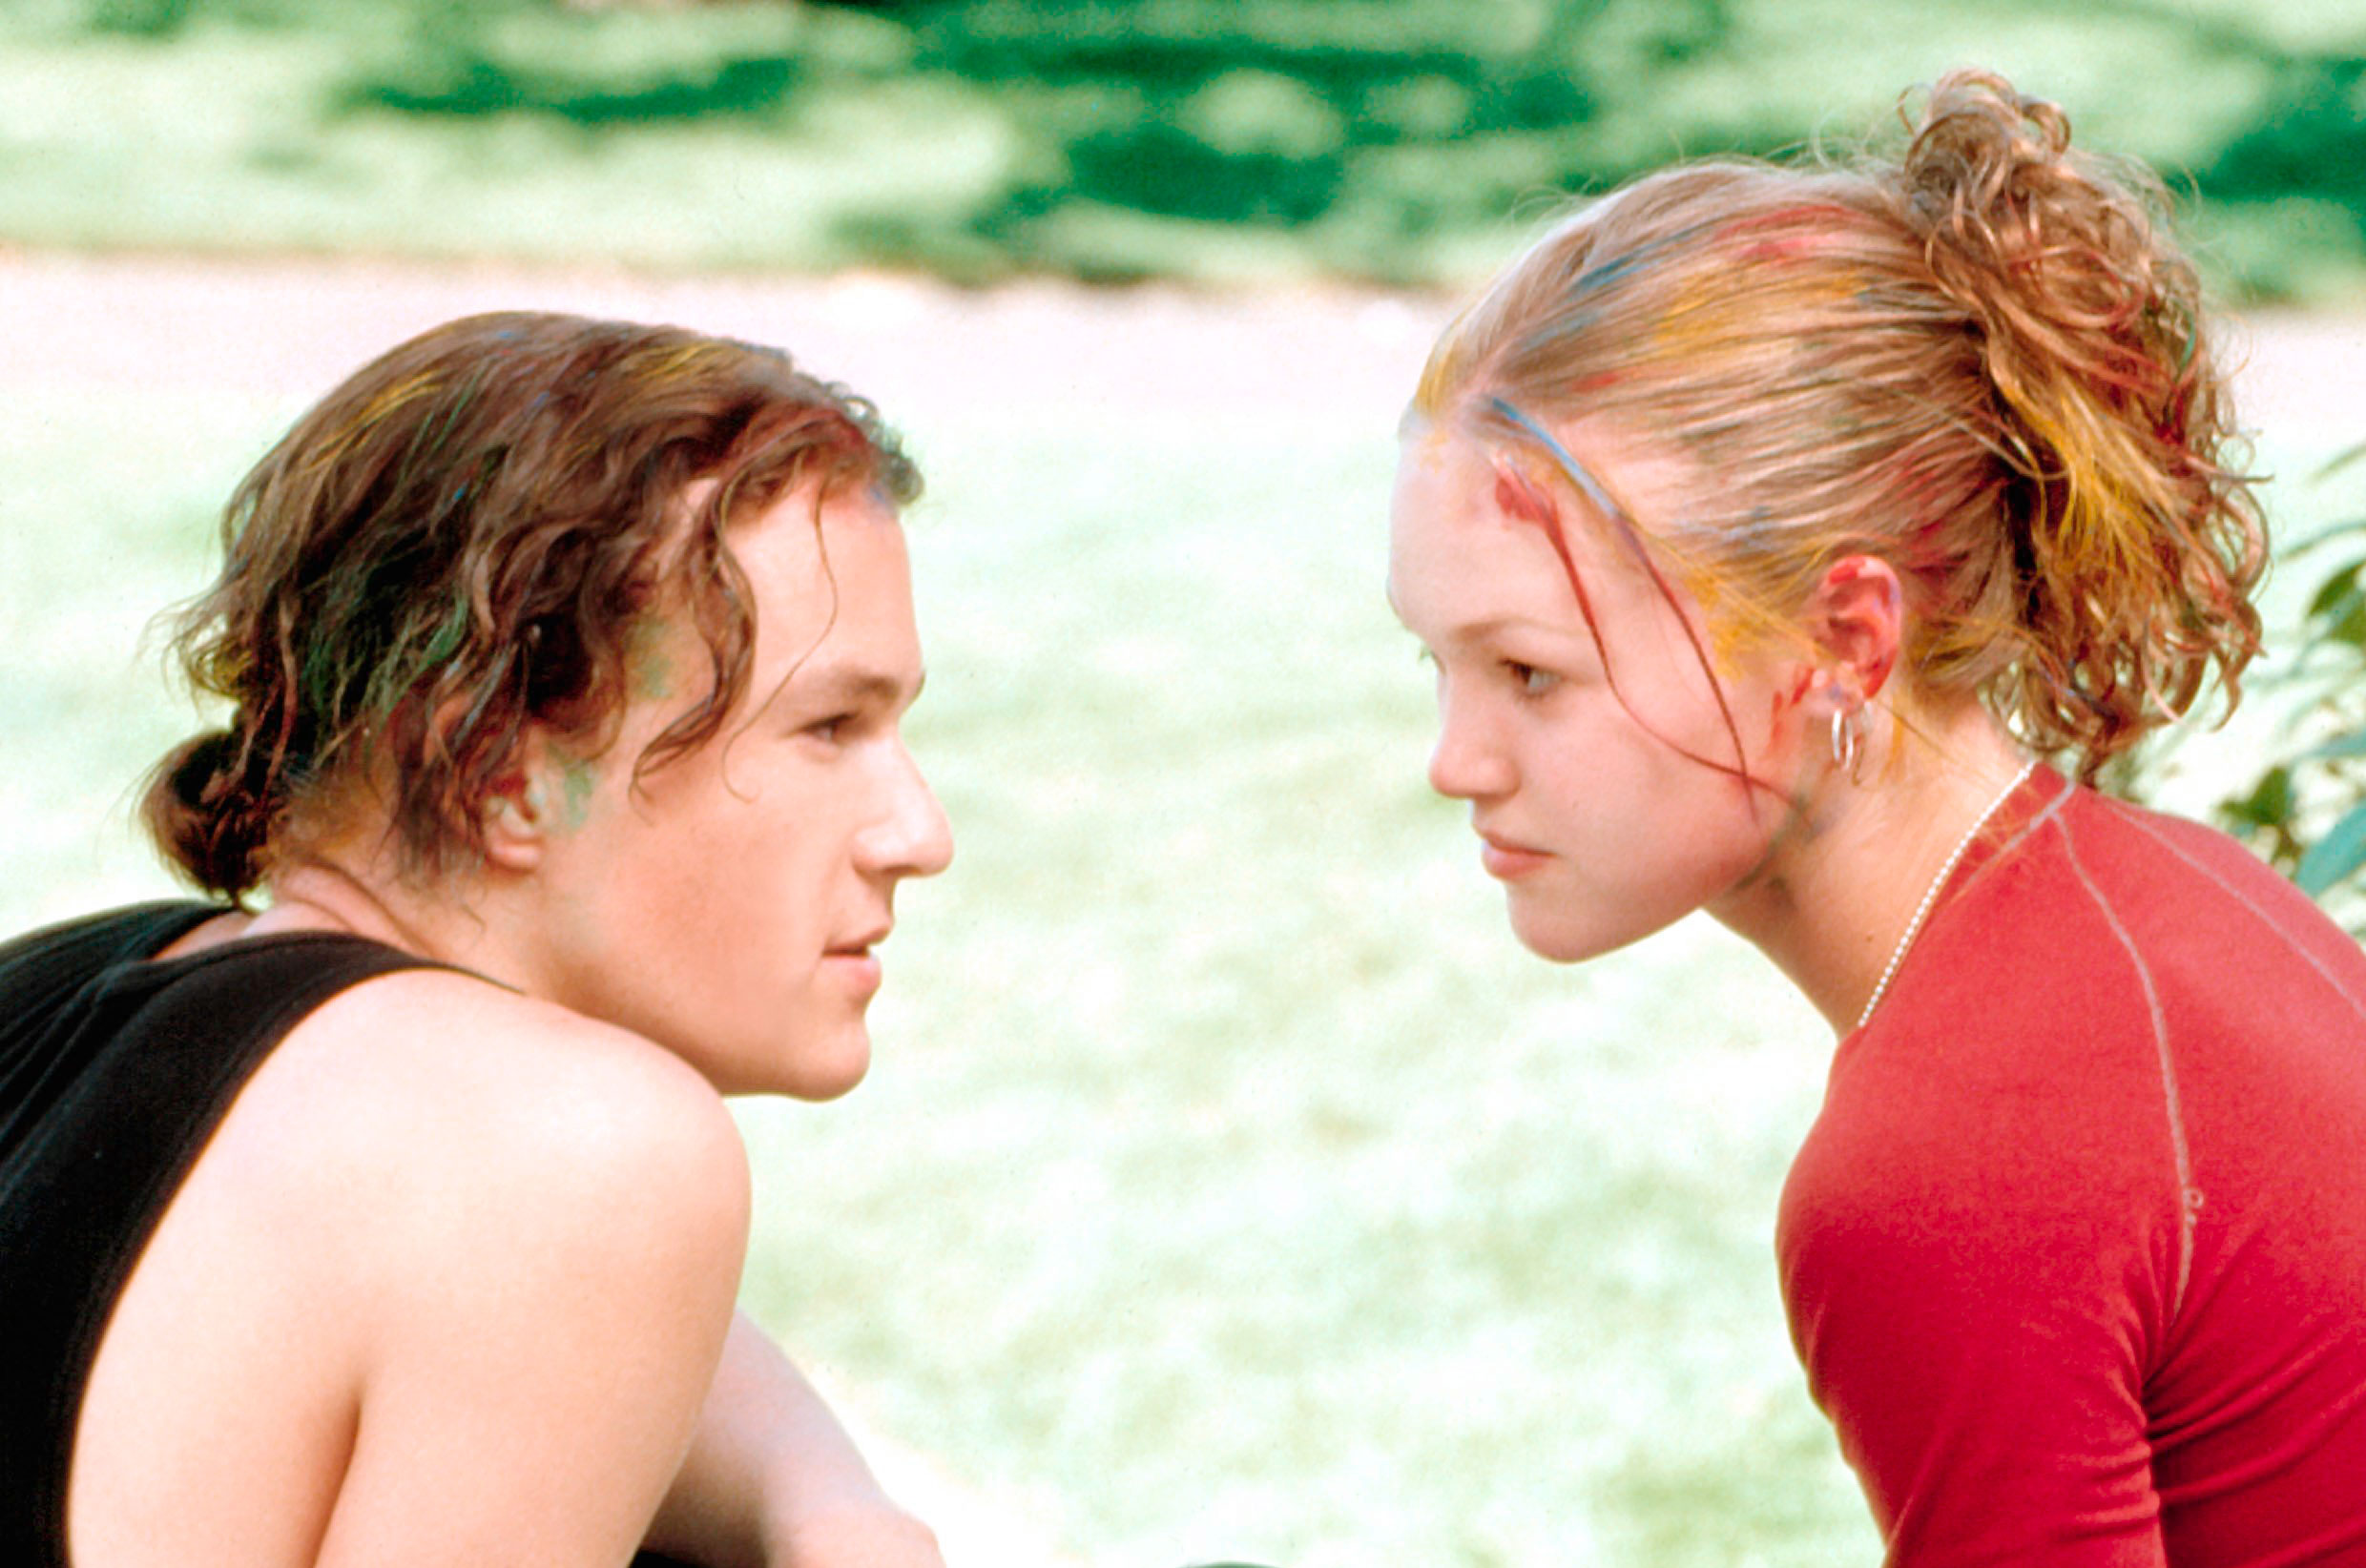 10thingsihateaboutyou Heathledger Juliastiles: We Got Nostalgic With Julia Stiles About '10 Things I Hate